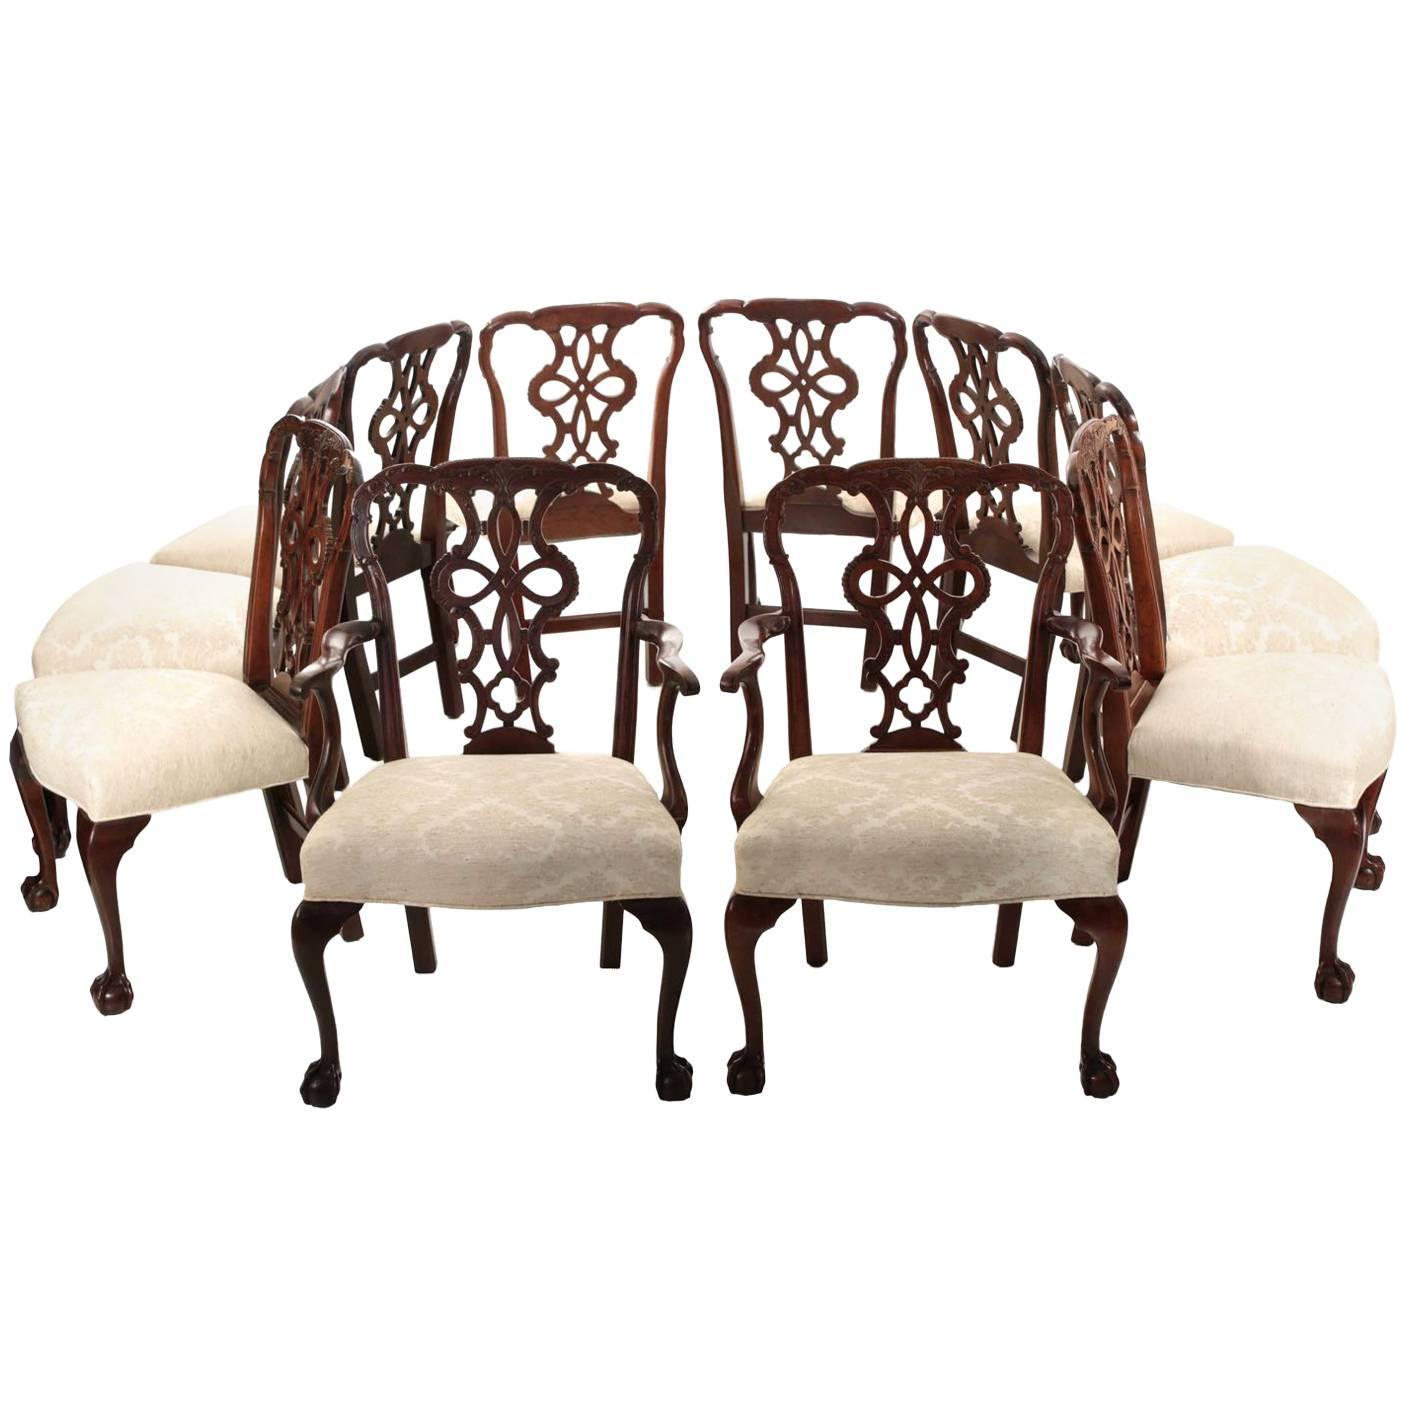 set of ten chippendale style carved mahogany ball and claw dining chairs